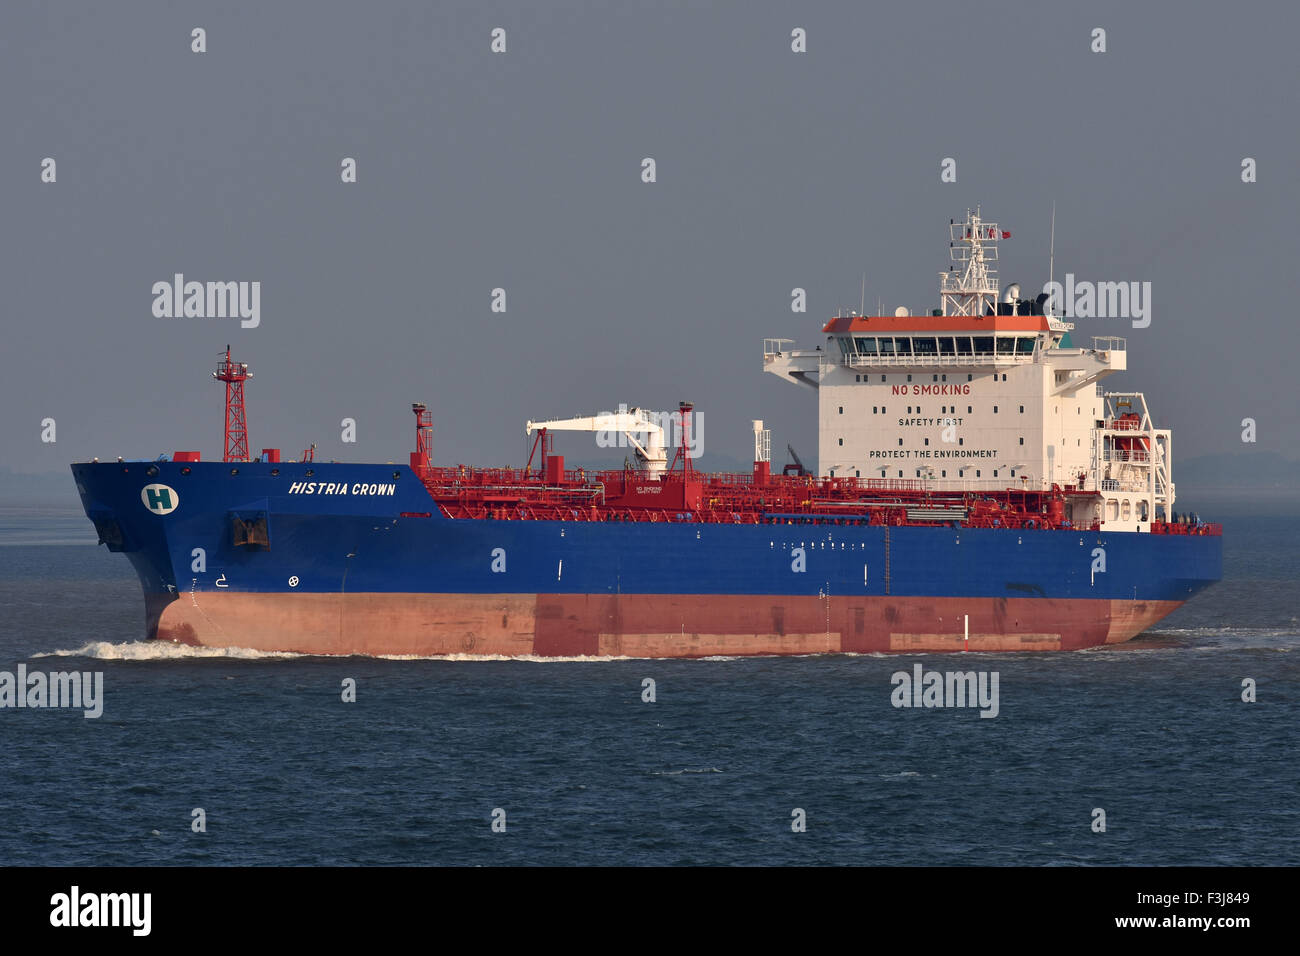 Chemical/Oil Products Tanker Histria Crown Stock Photo